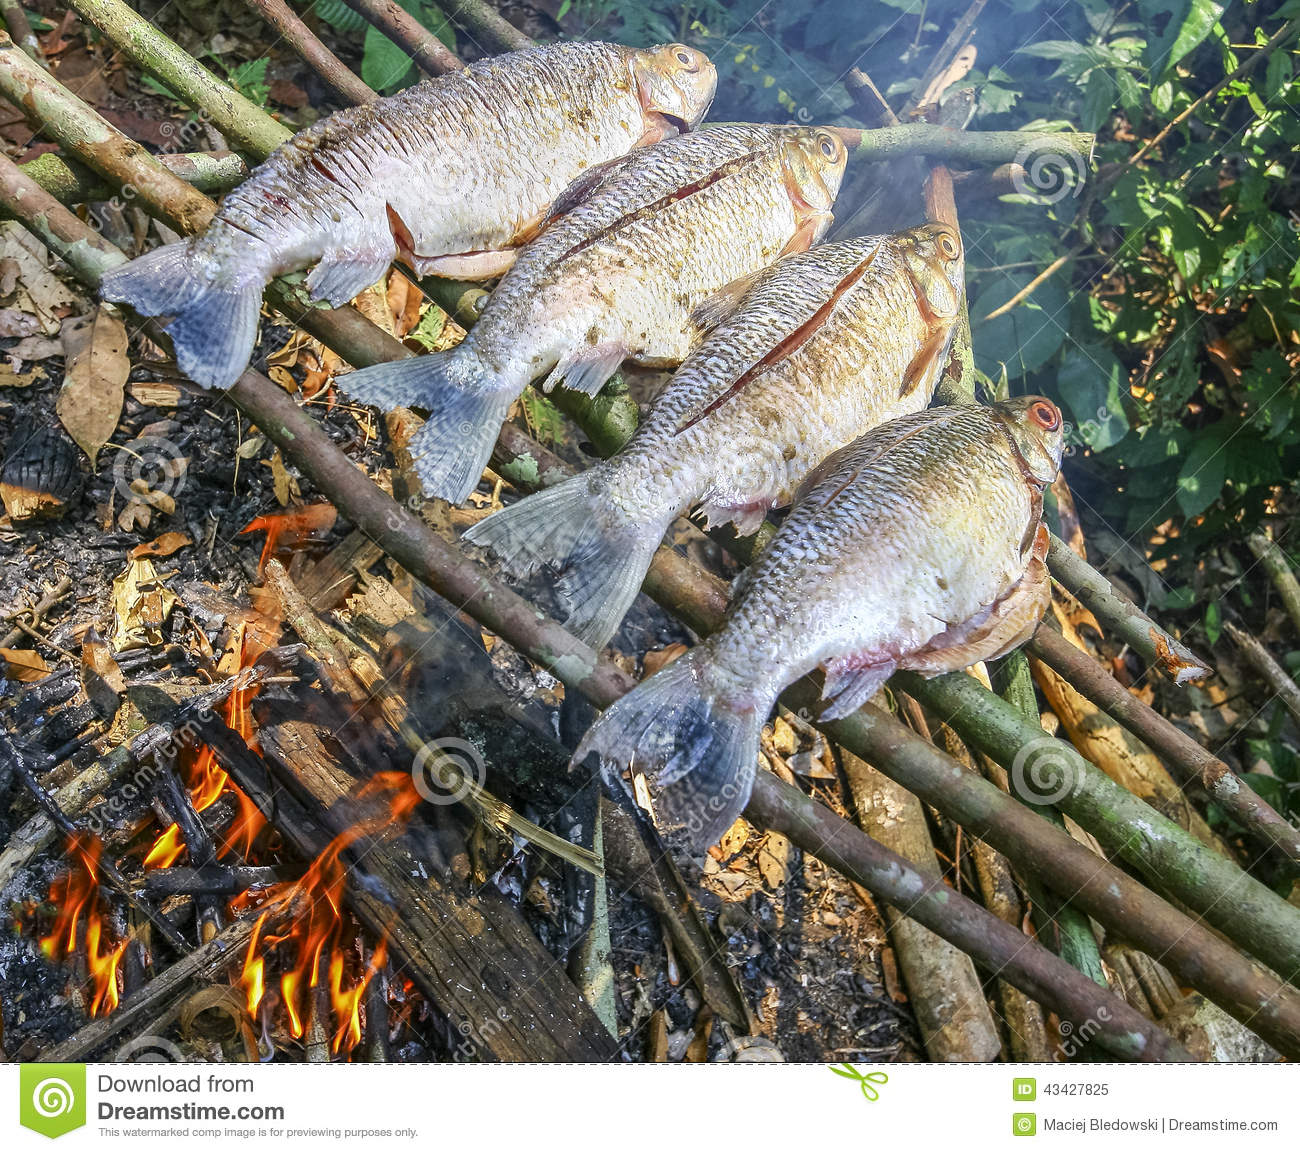 how to cook a fish on fire